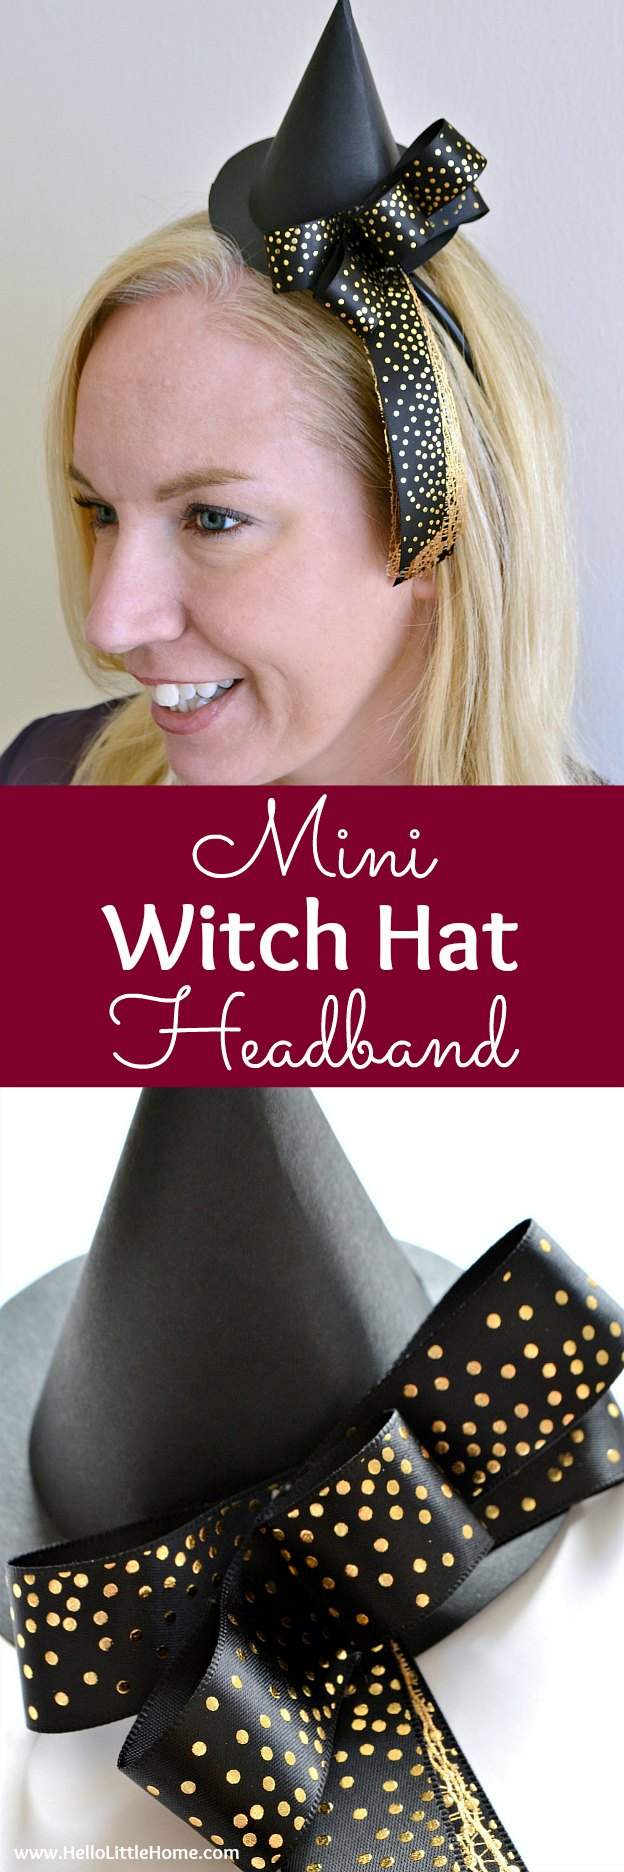 DIY Mini Witch Hat Headband ... a fun craft that's perfect to wear for an easy Halloween costume! Learn how to make this easy DIY paper witch hat using a template / pattern and following a simple tutorial. This DIY witch hat fascinator makes a cute costume accessory that's great for kids or adults! | Hello Little Home